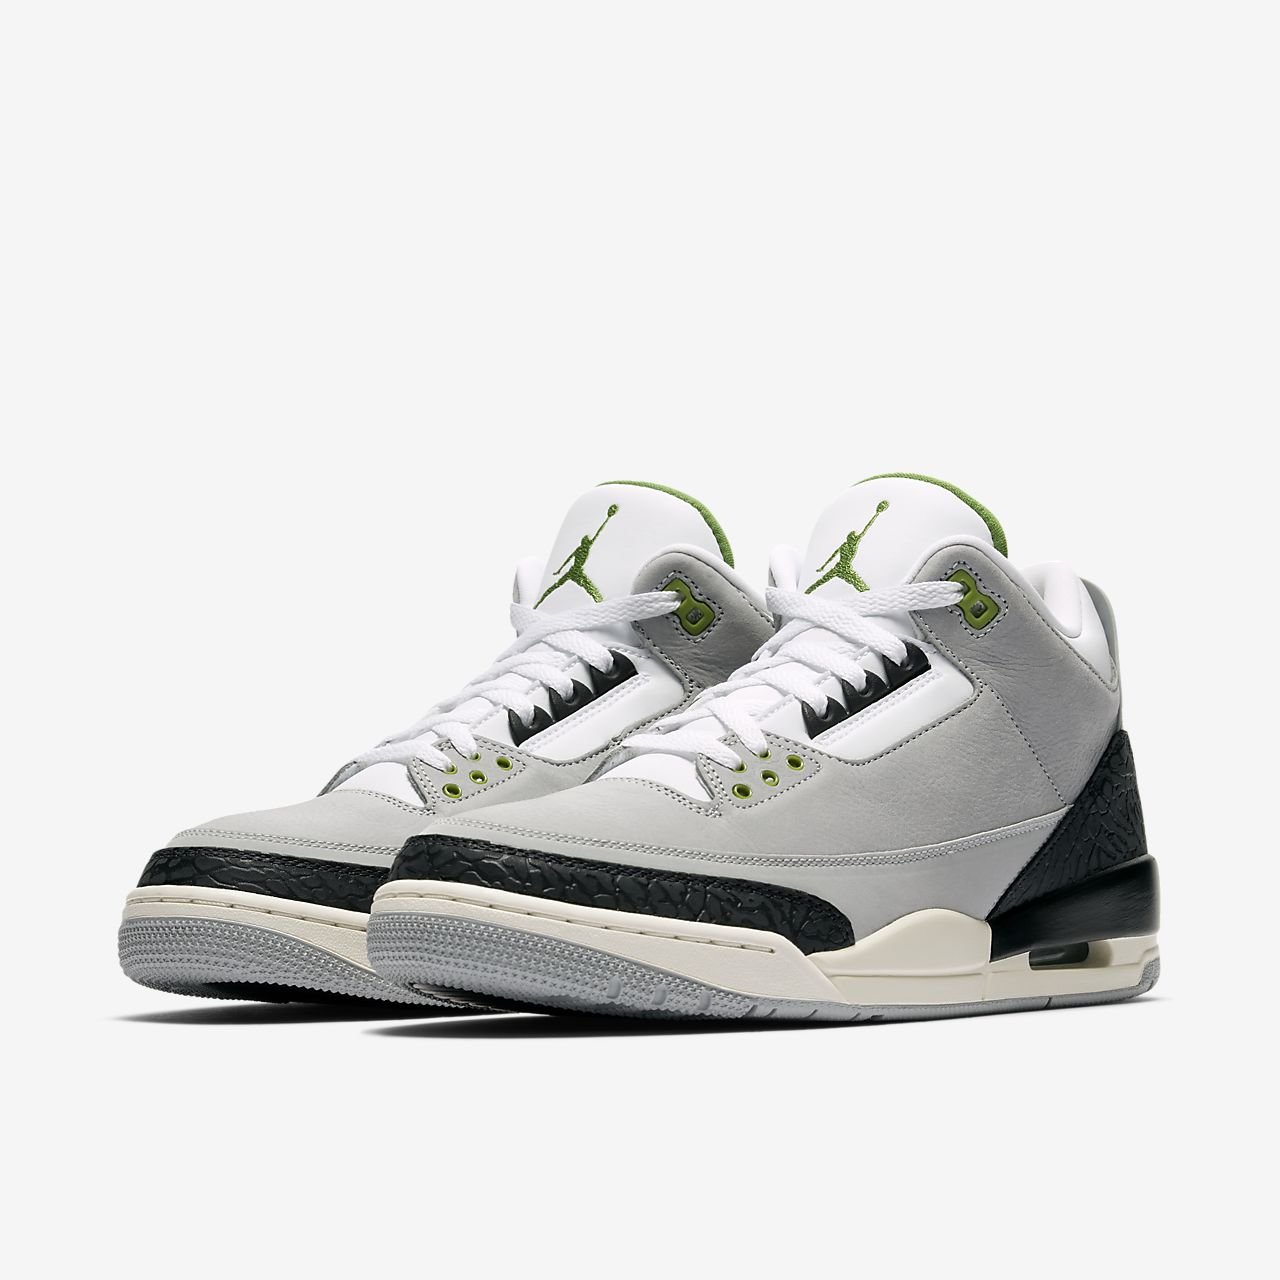 6353d5066c1c30 Air Jordan 3 Retro Men s Shoe. Nike.com AU